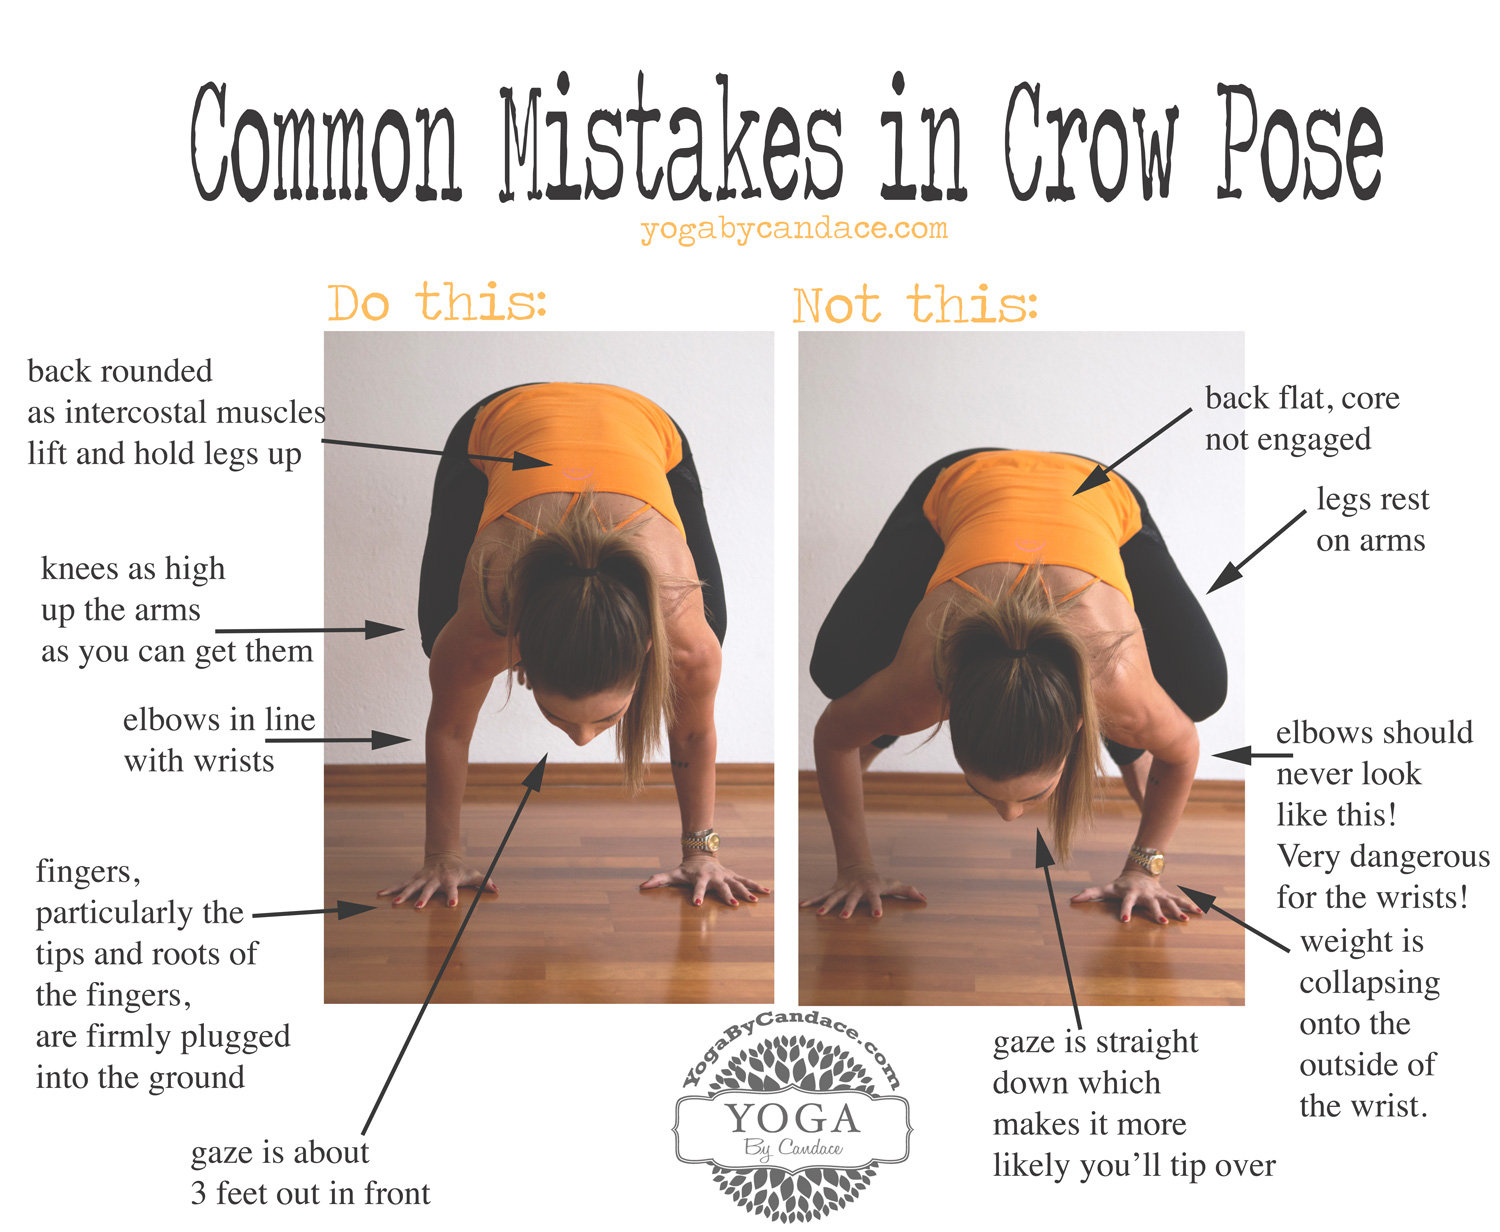 Common Mistakes in Crow Pose — YOGABYCANDACE